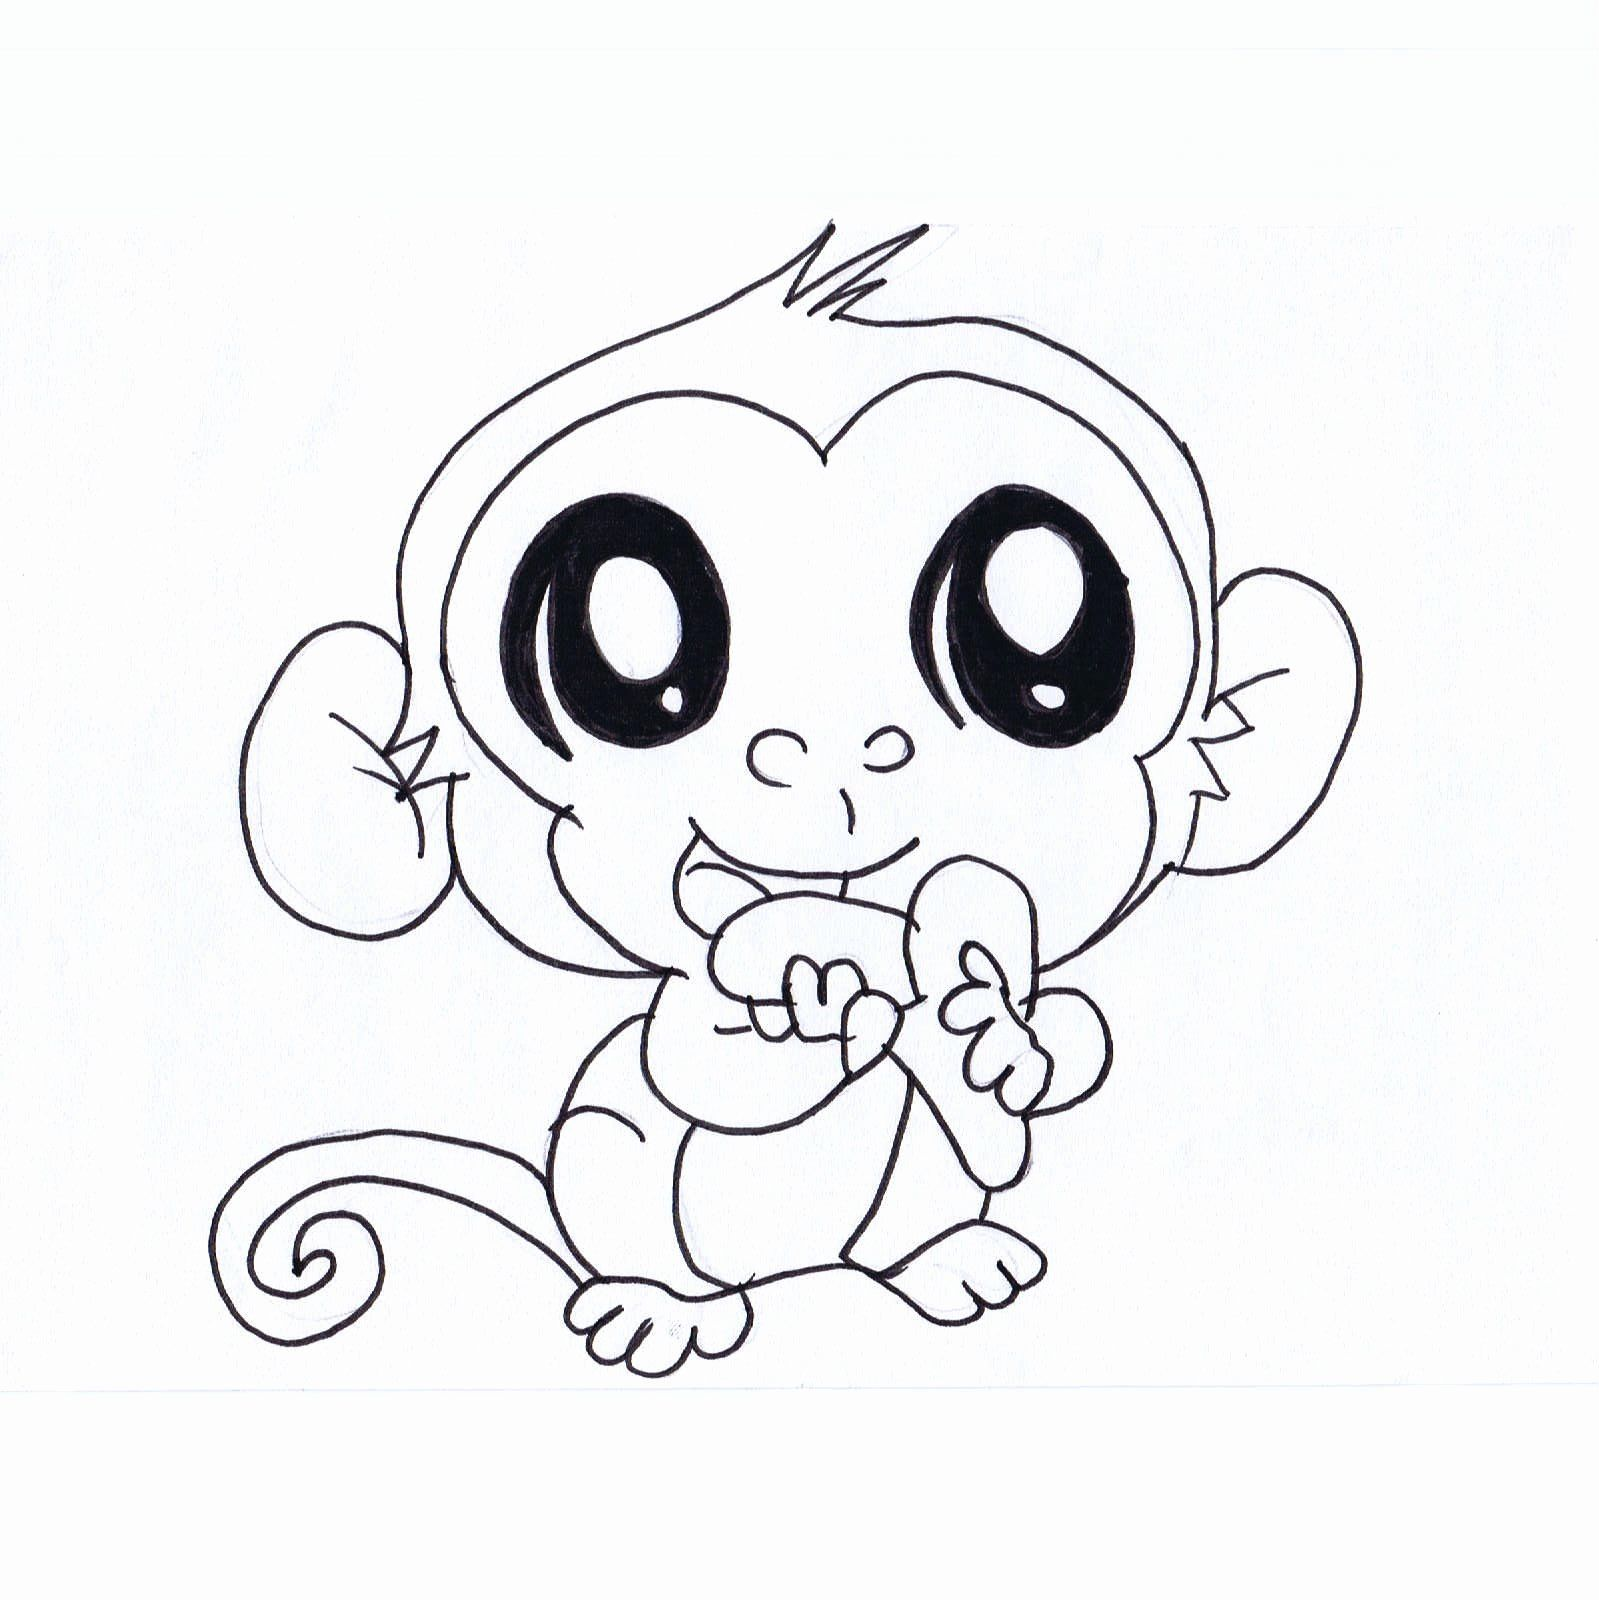 Cute Cartoon Animal Coloring Pages Awesome Cute Cartoon